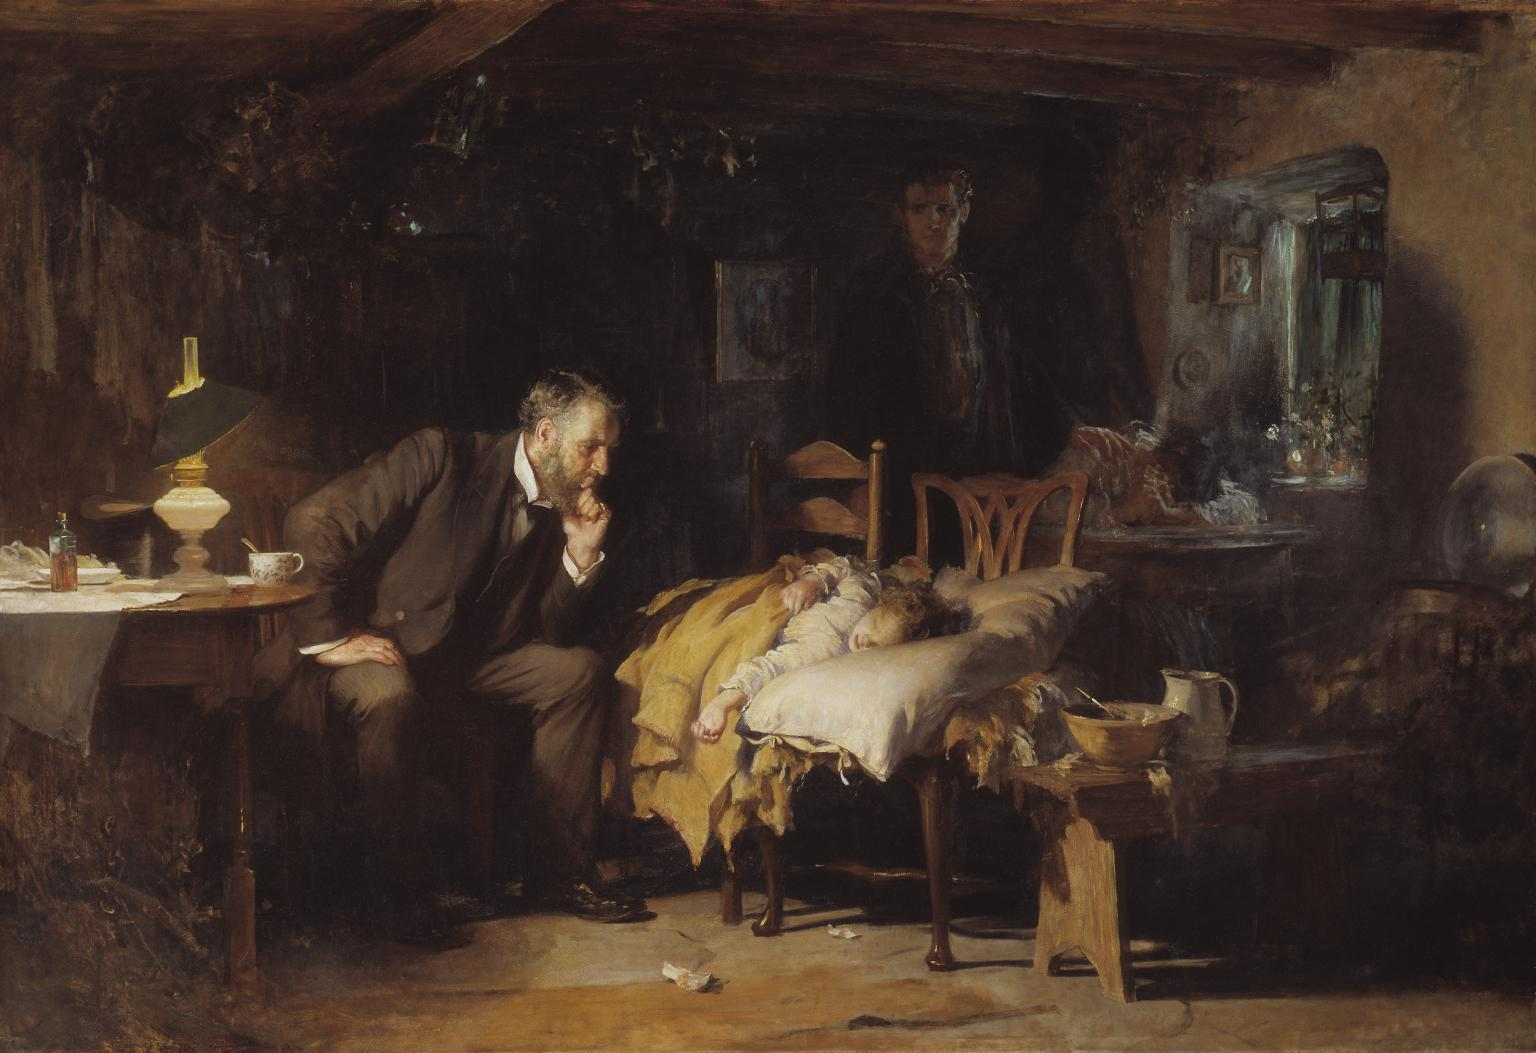 'The Doctor' painting by Luke Fildes